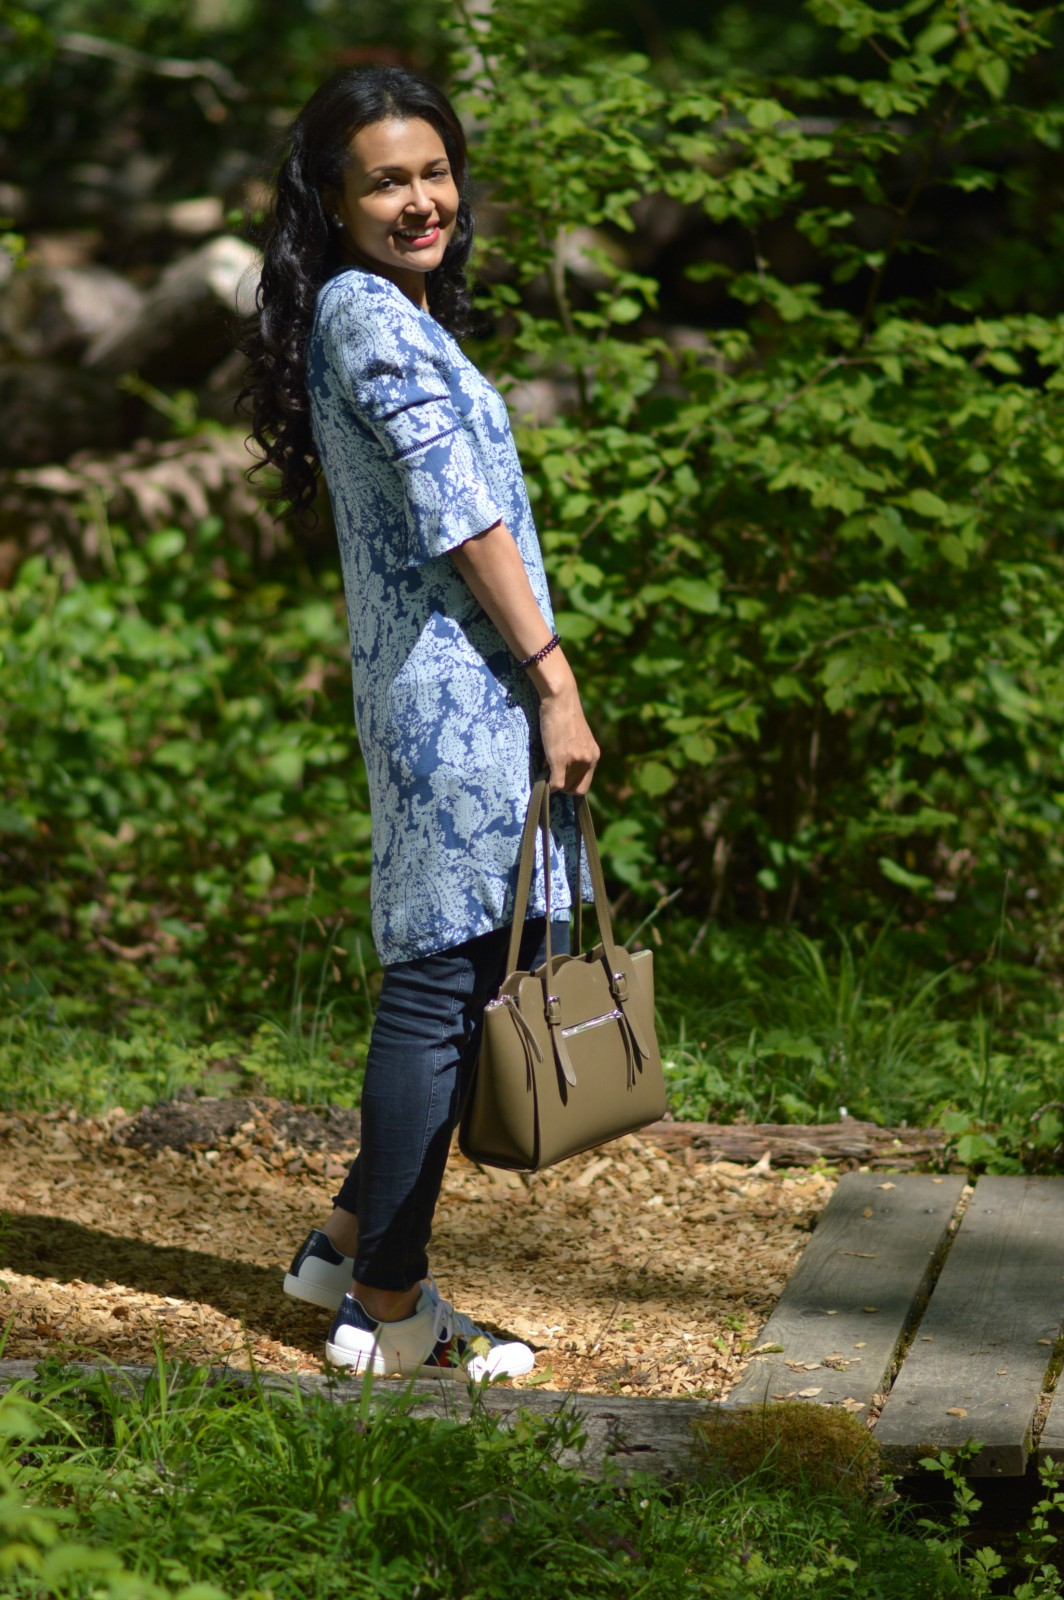 tote bag/Noleti/currently wearing